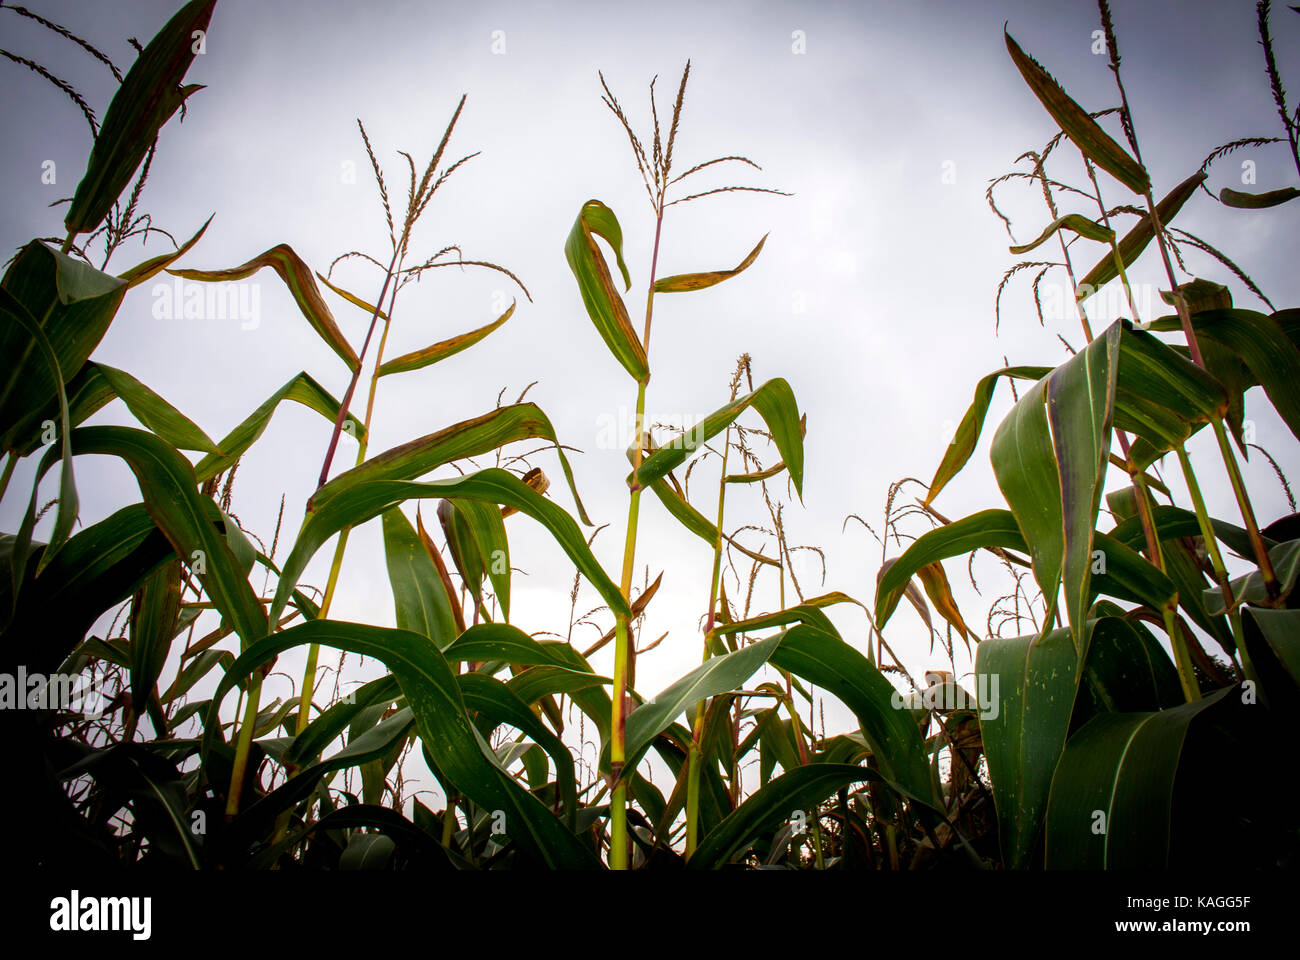 Maize crop being grown in Salzatal, Saxony-Anhalt, Germany for use as Bio Fuel. - Stock Image